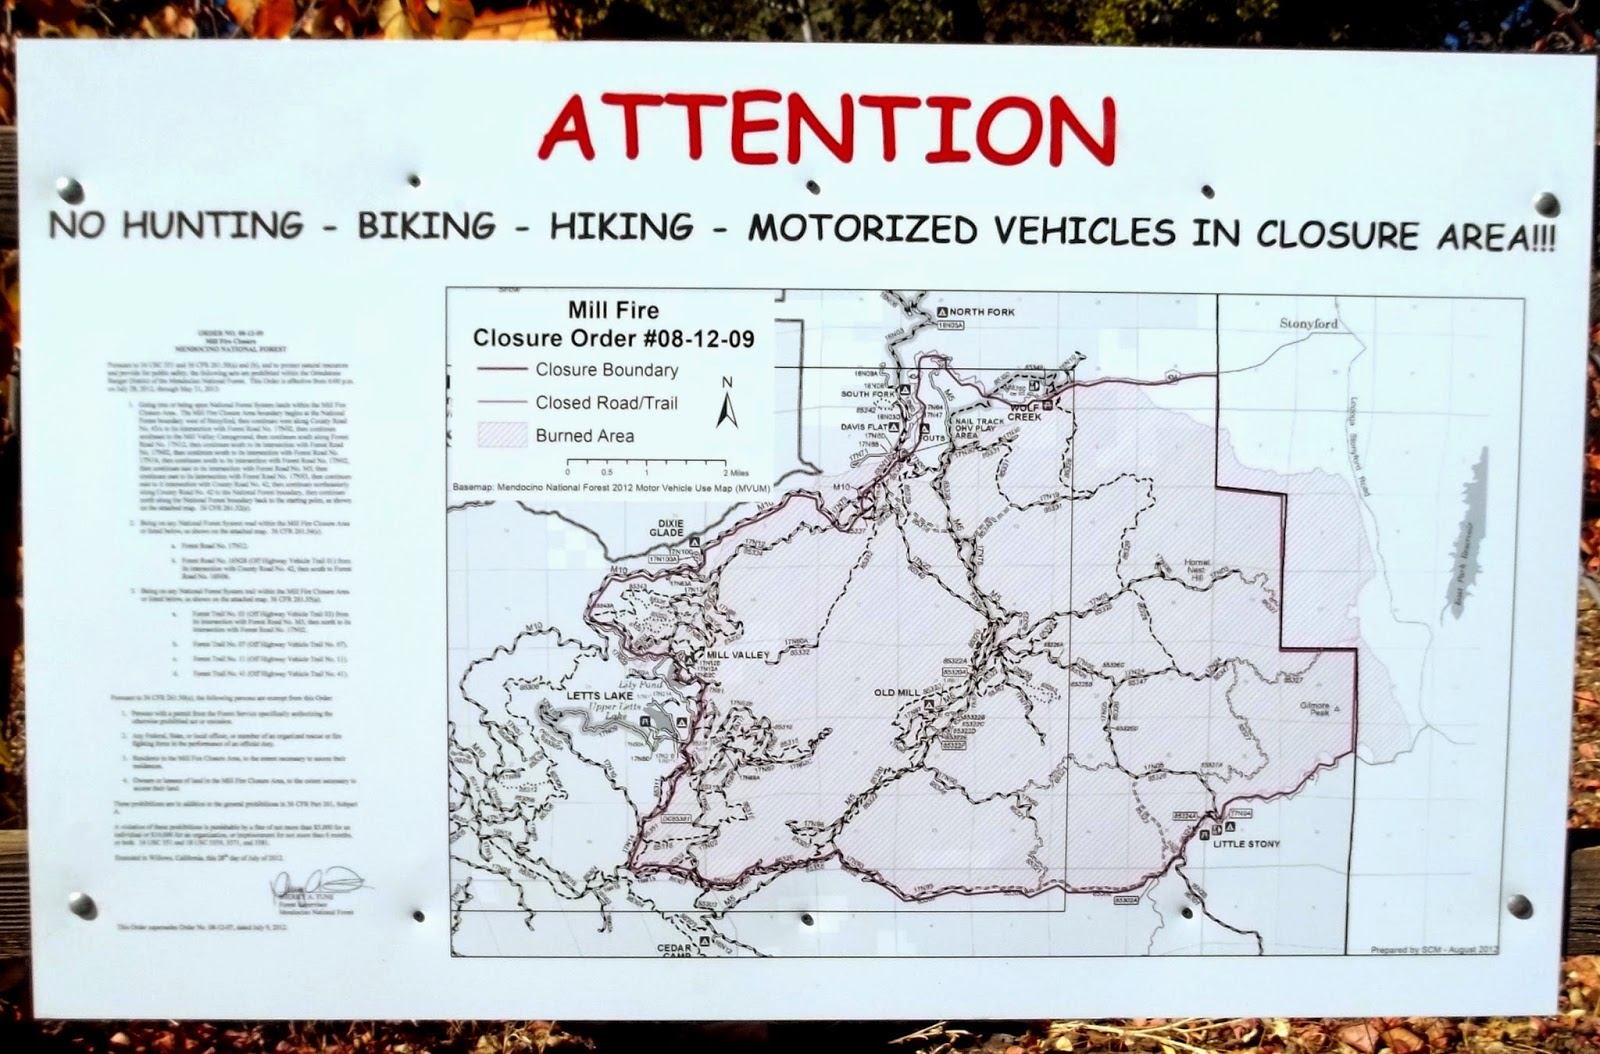 Intense Wildfire and Over Regulation Impact OHV Recreation - Letter to EPA from BRC